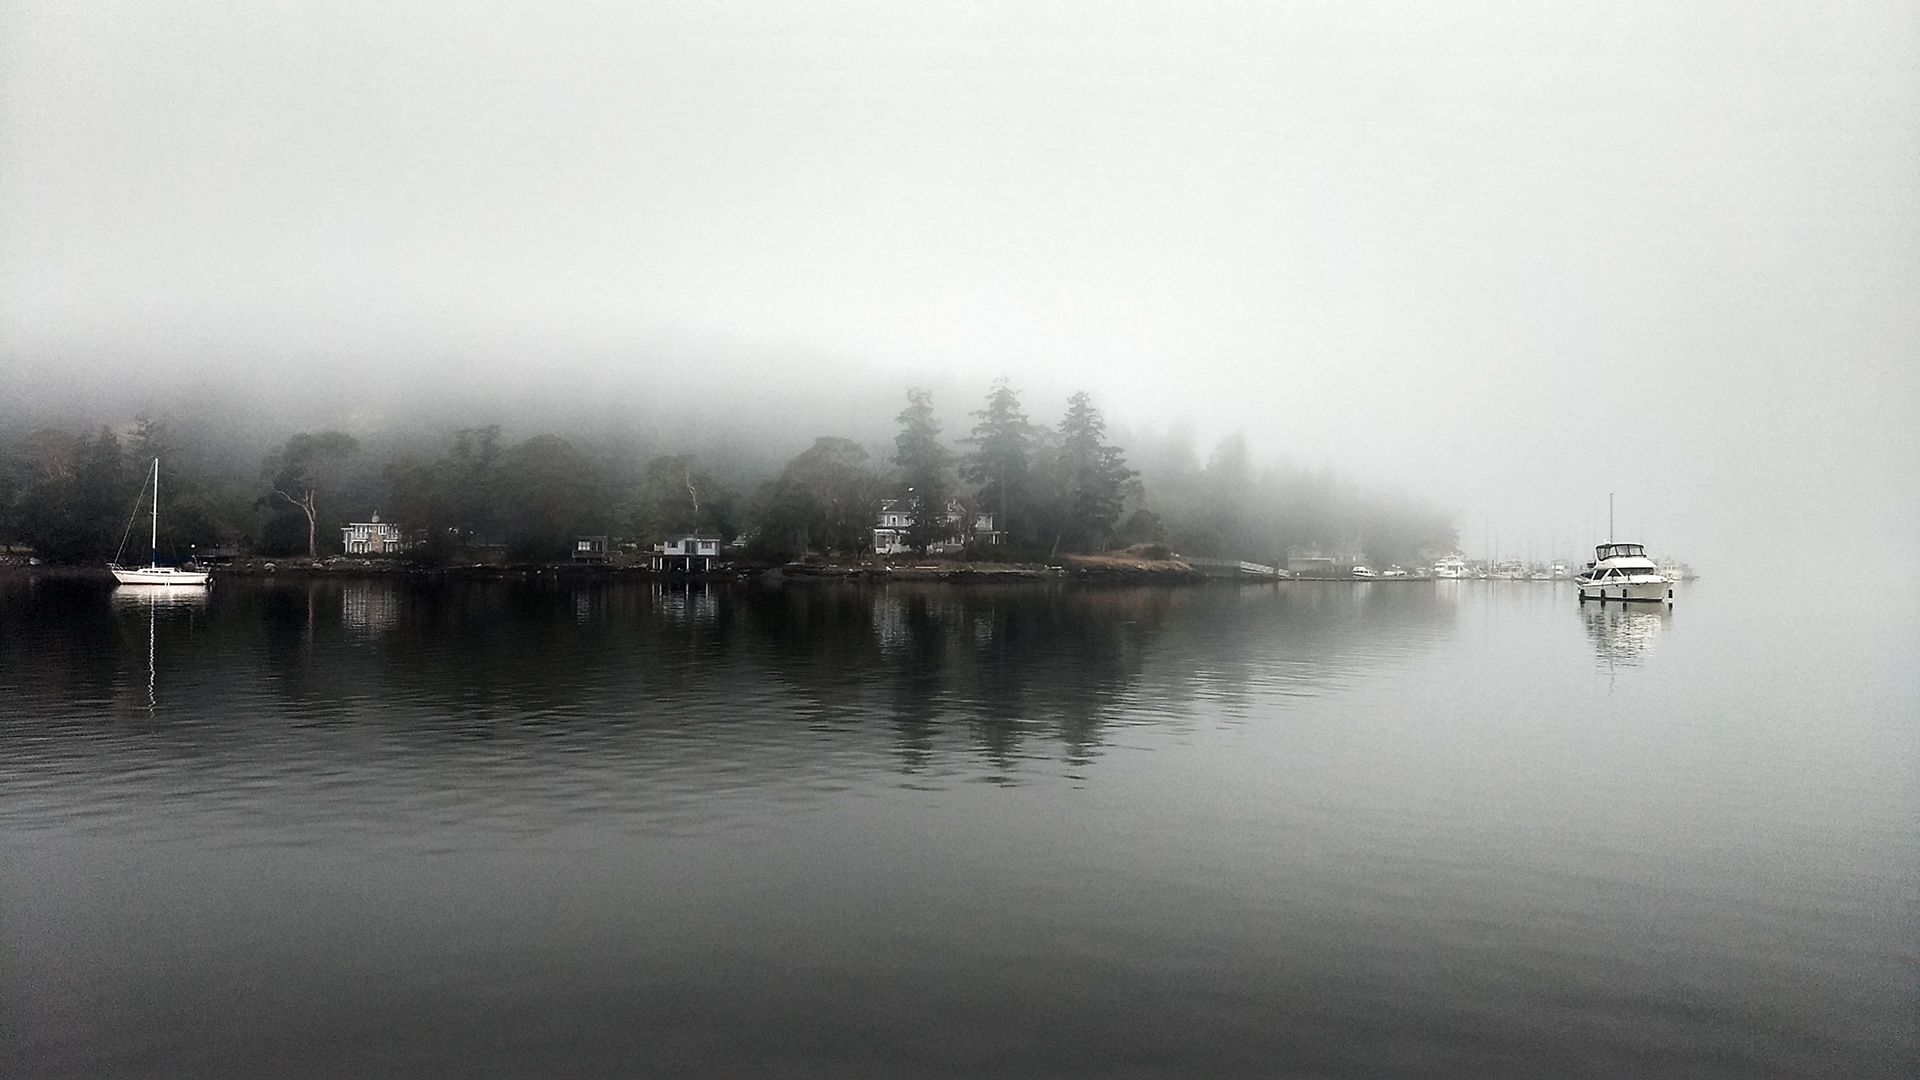 A foggy shoreline. The trees fade into gray and the water is very calm, reflecting the shore.